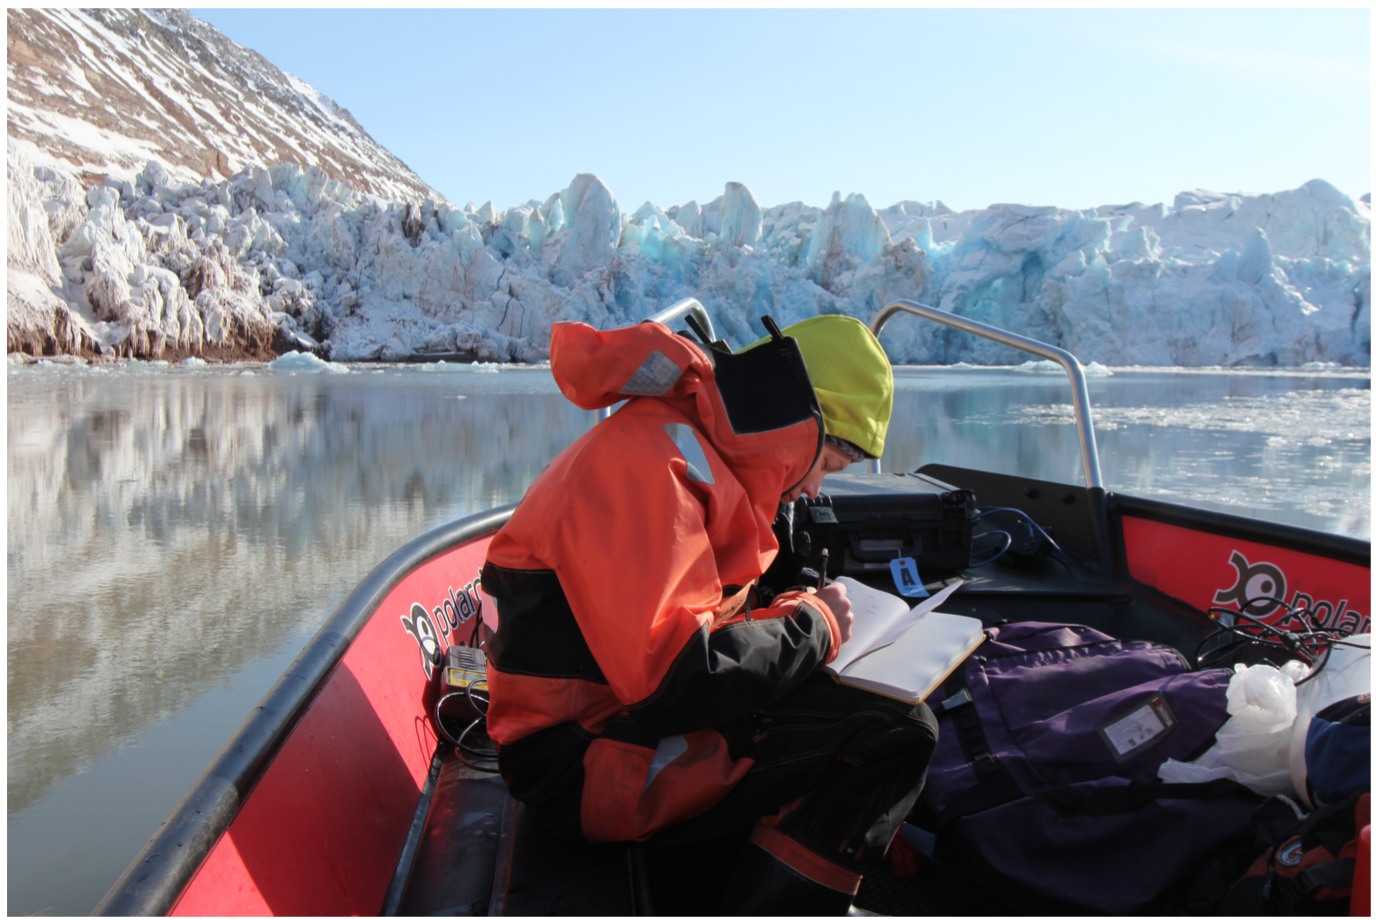 Kristin Schild in her survival suit and field gear collecting samples out of a Rigid Inflatable Boat (RIB) in Kongsfjorden, Svalbard, Norway. She is studying the influence of a warming climate on ice discharge and its influence on physical and biological dynamics within the fjord. Photo: K. Lindbäck